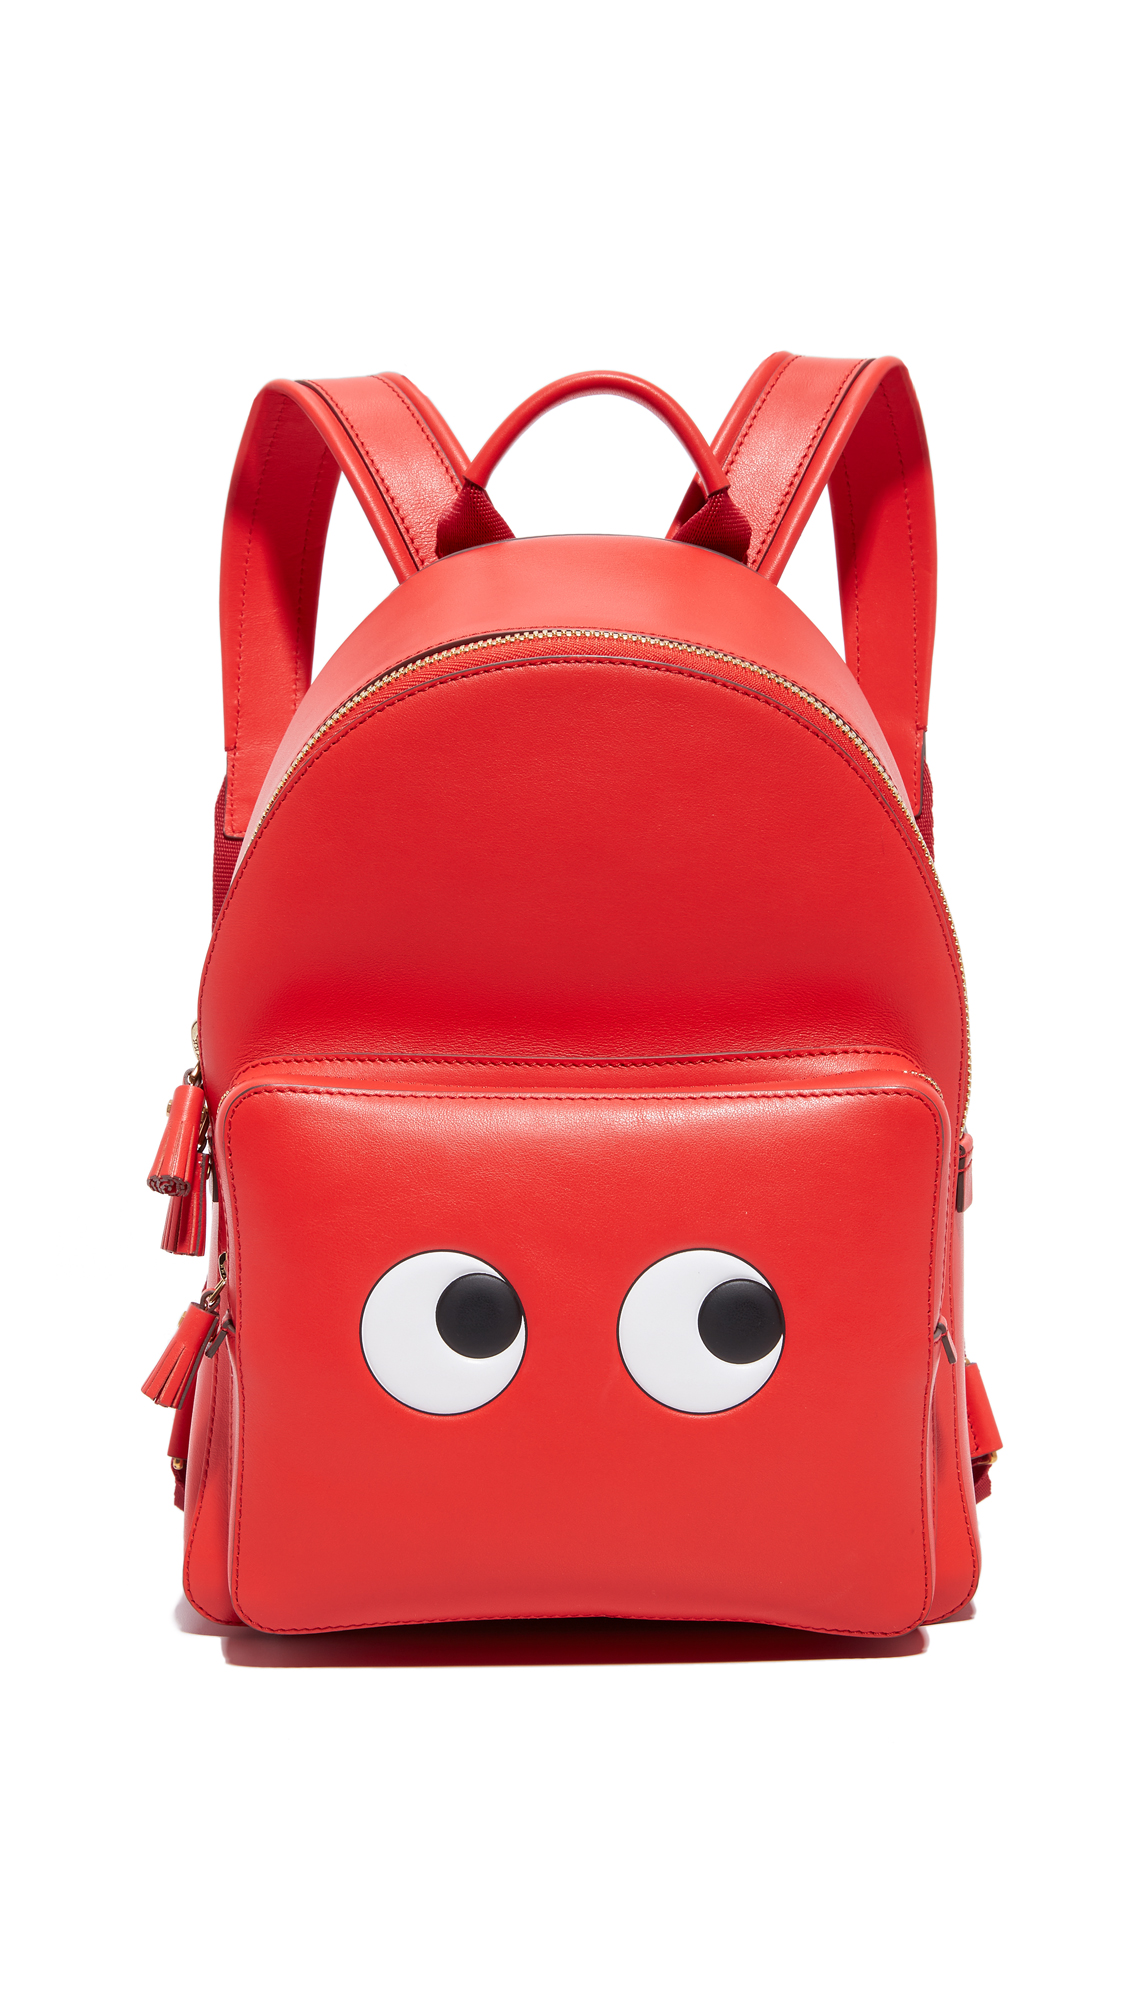 Anya Hindmarch Mini Eyes Backpack - Geisha Capra